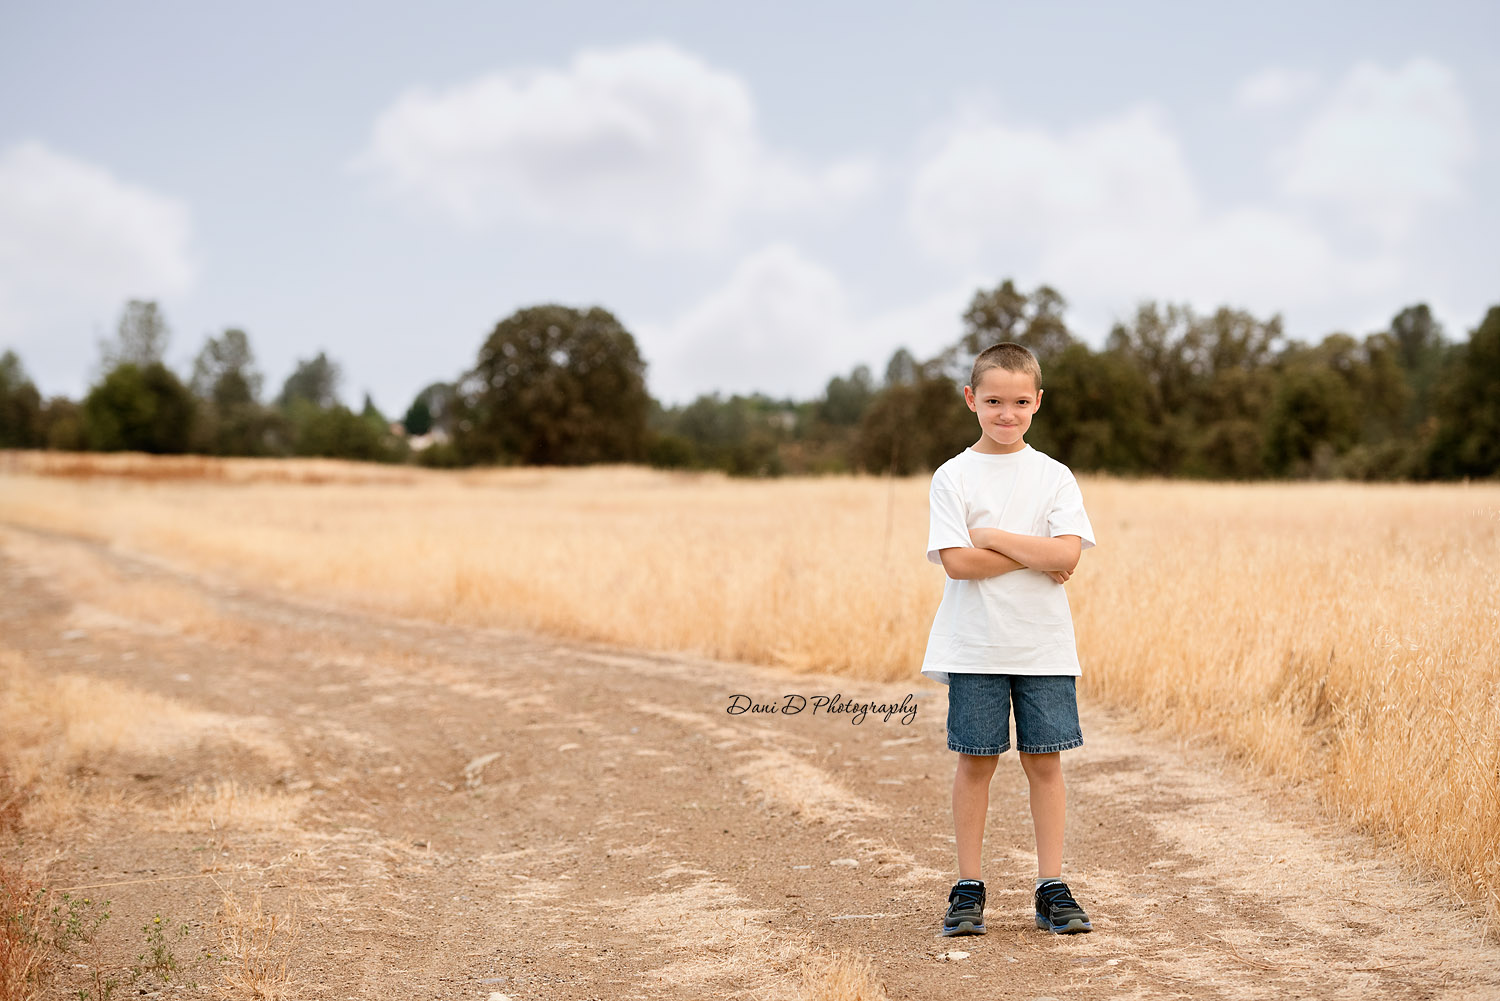 Grumpy boy in field - Female child model in field - Redding CA photographer - Dani D Photography